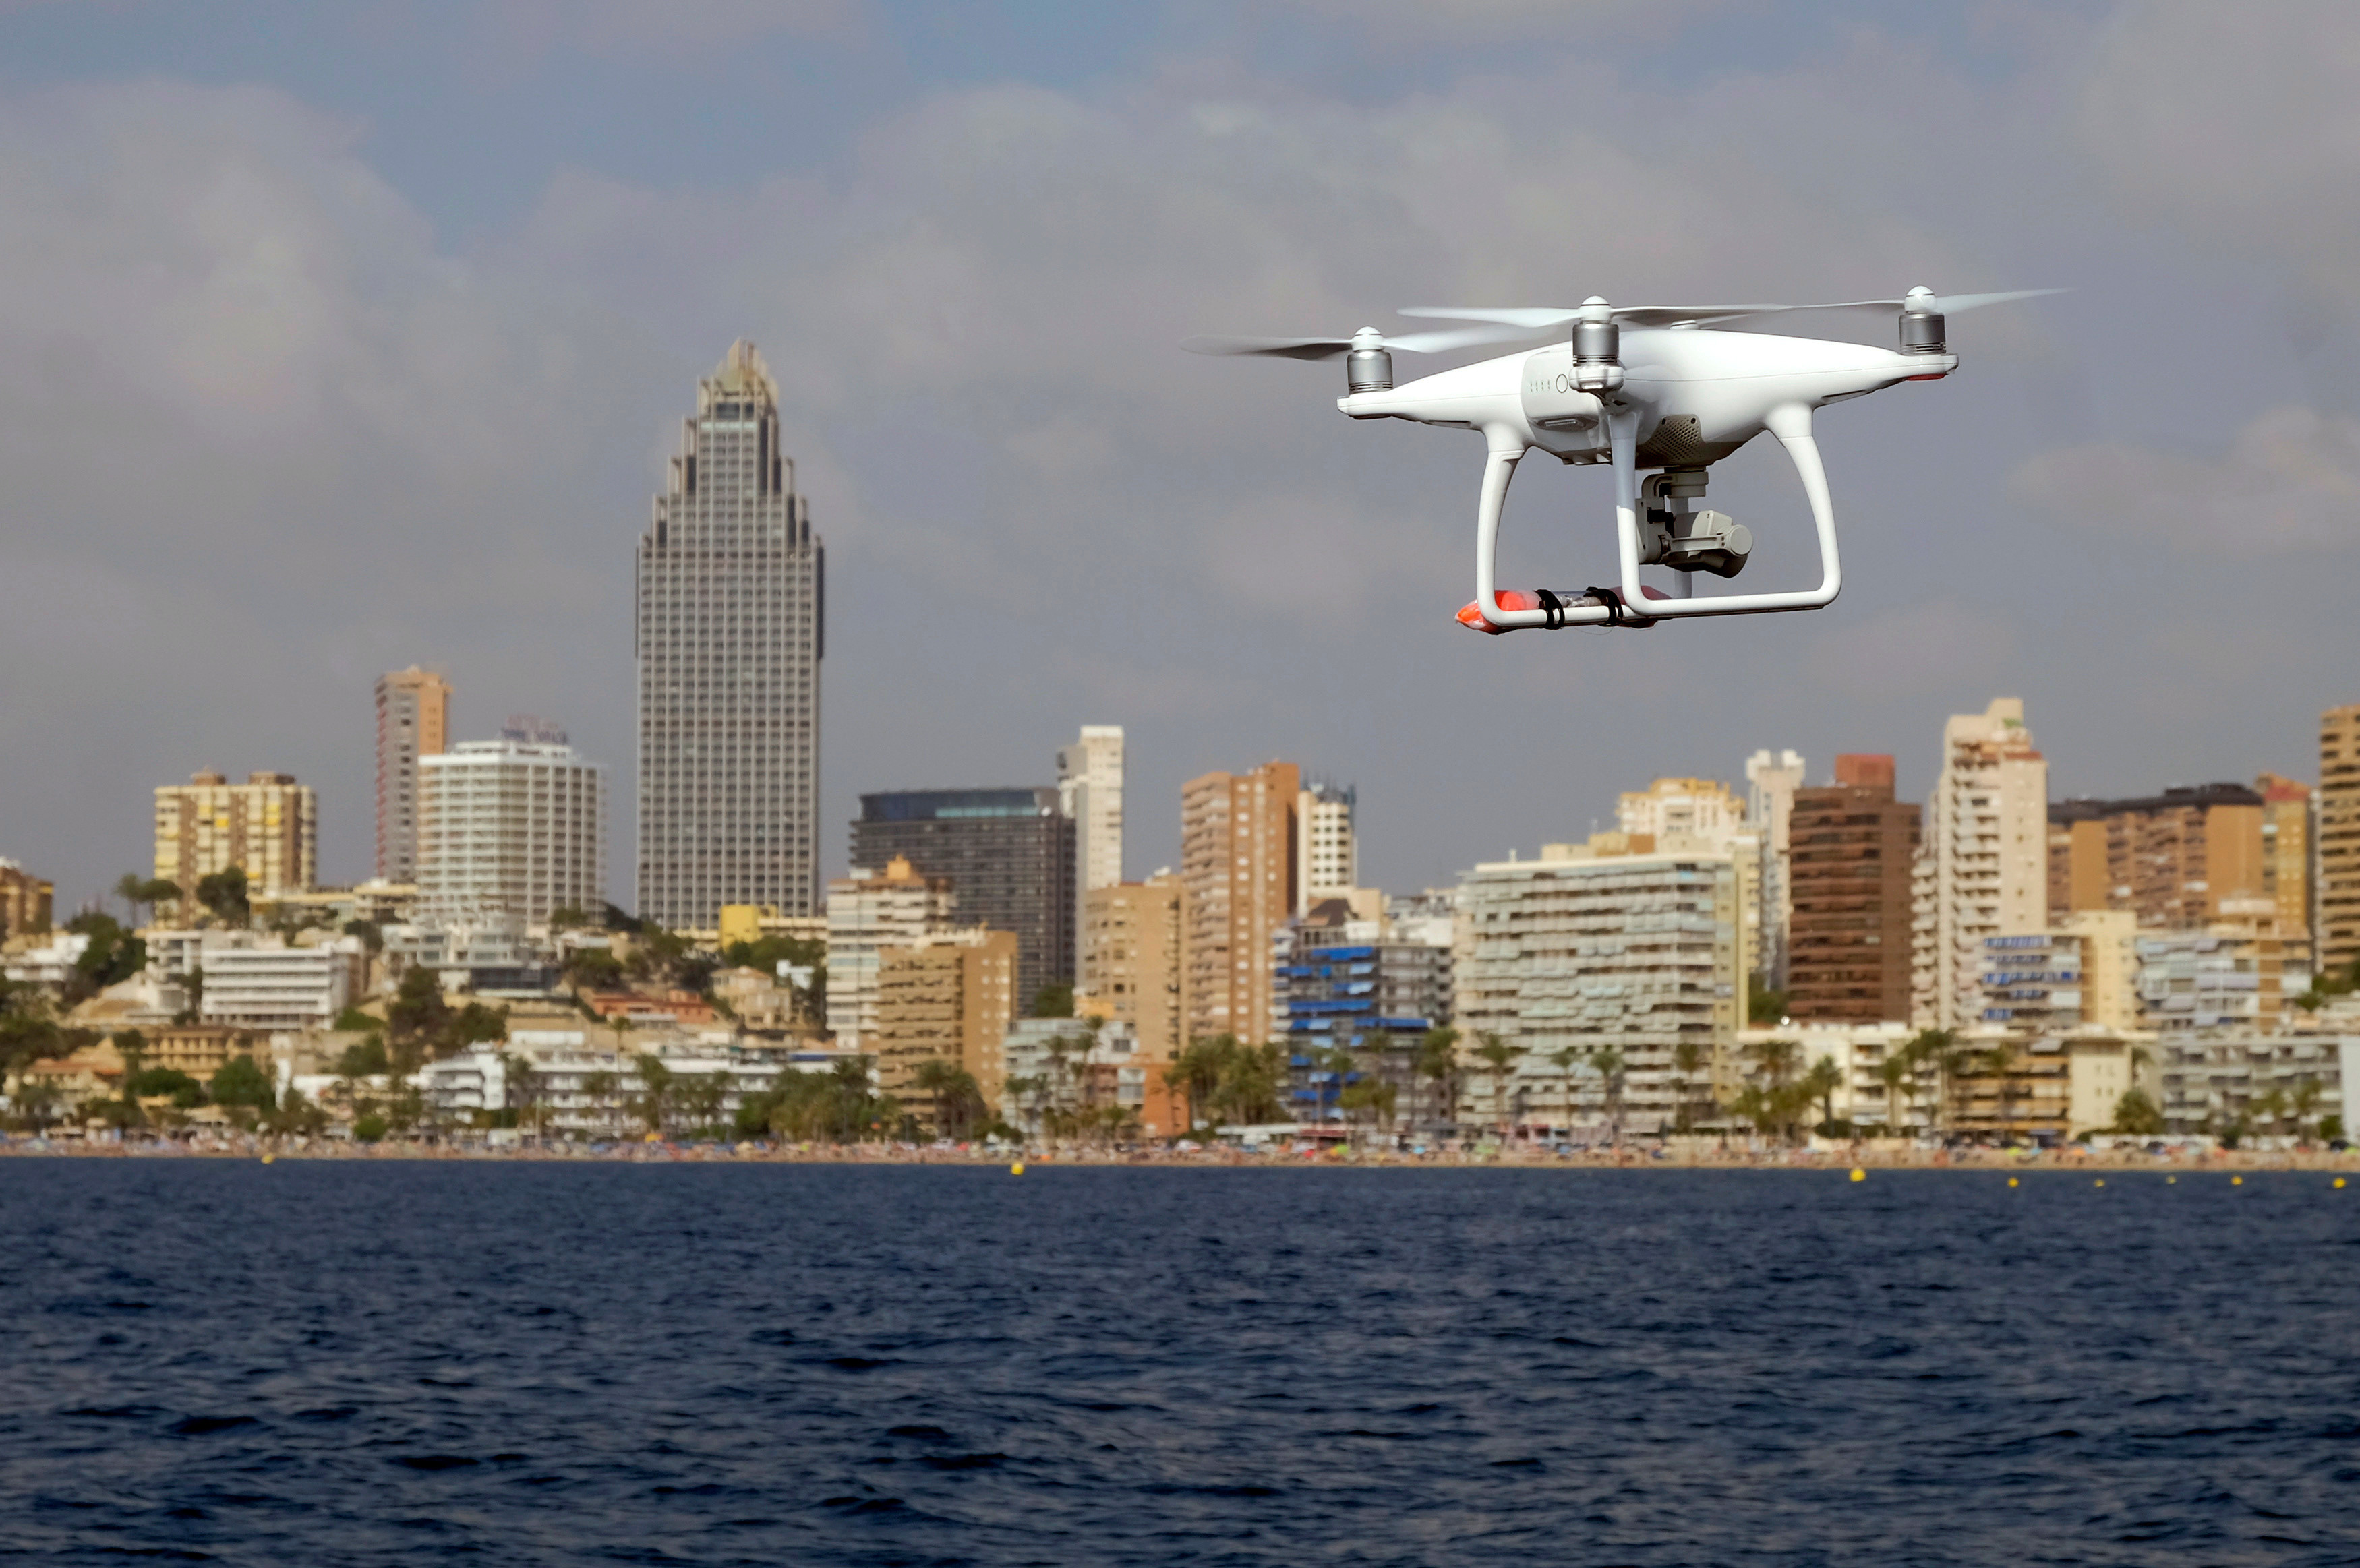 A drone, equipped with a camera used by police for surveillance tasks, flies in front of Poniente beach at the eastern costal town of Benidorm, Spain, August 18, 2016. REUTERS/Heino Kalis - RTX2LU83